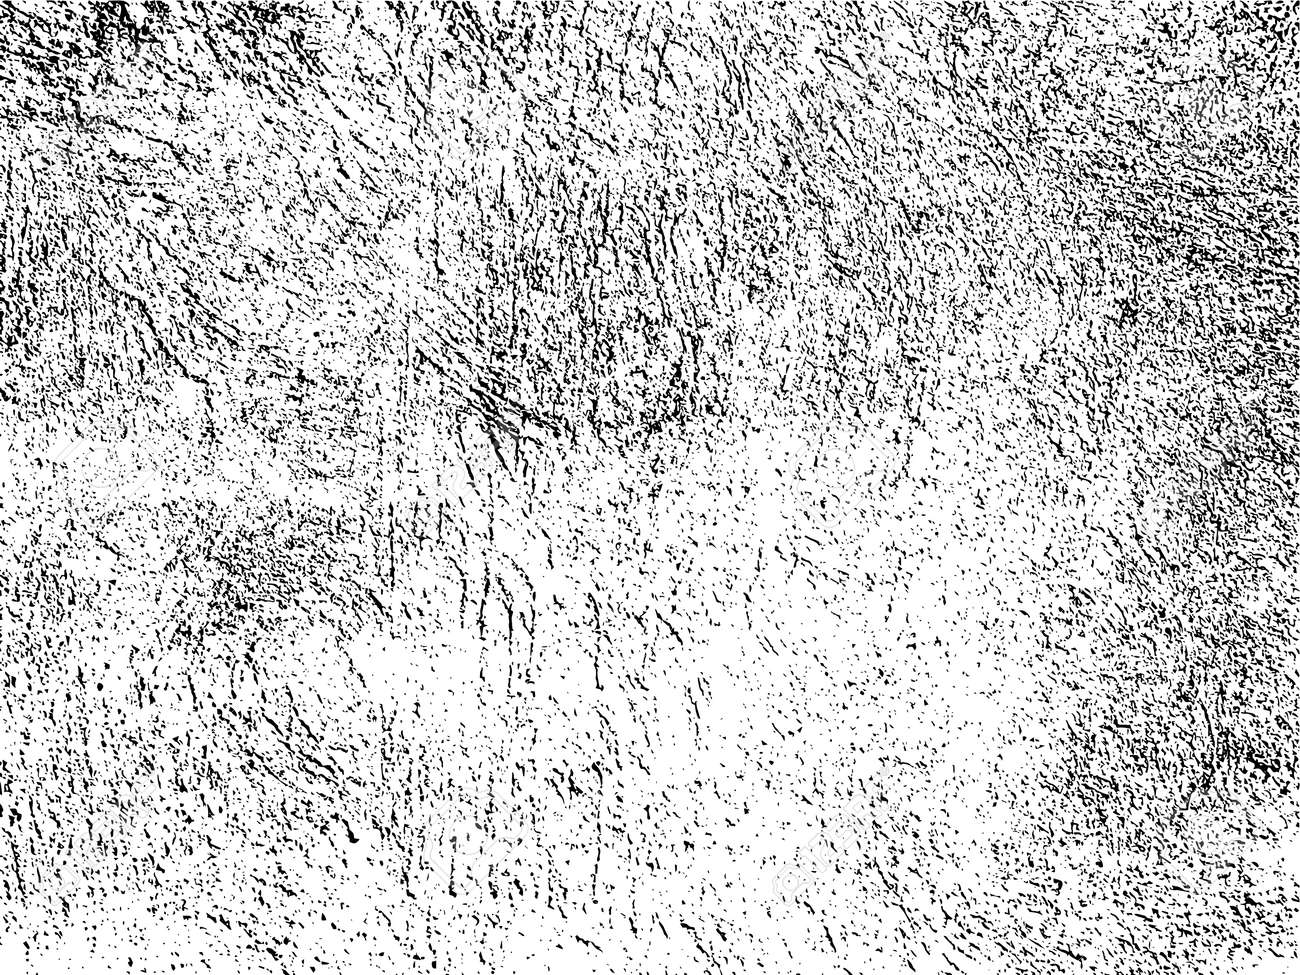 Concrete texture. Cement overlay black and white texture. - 167617441